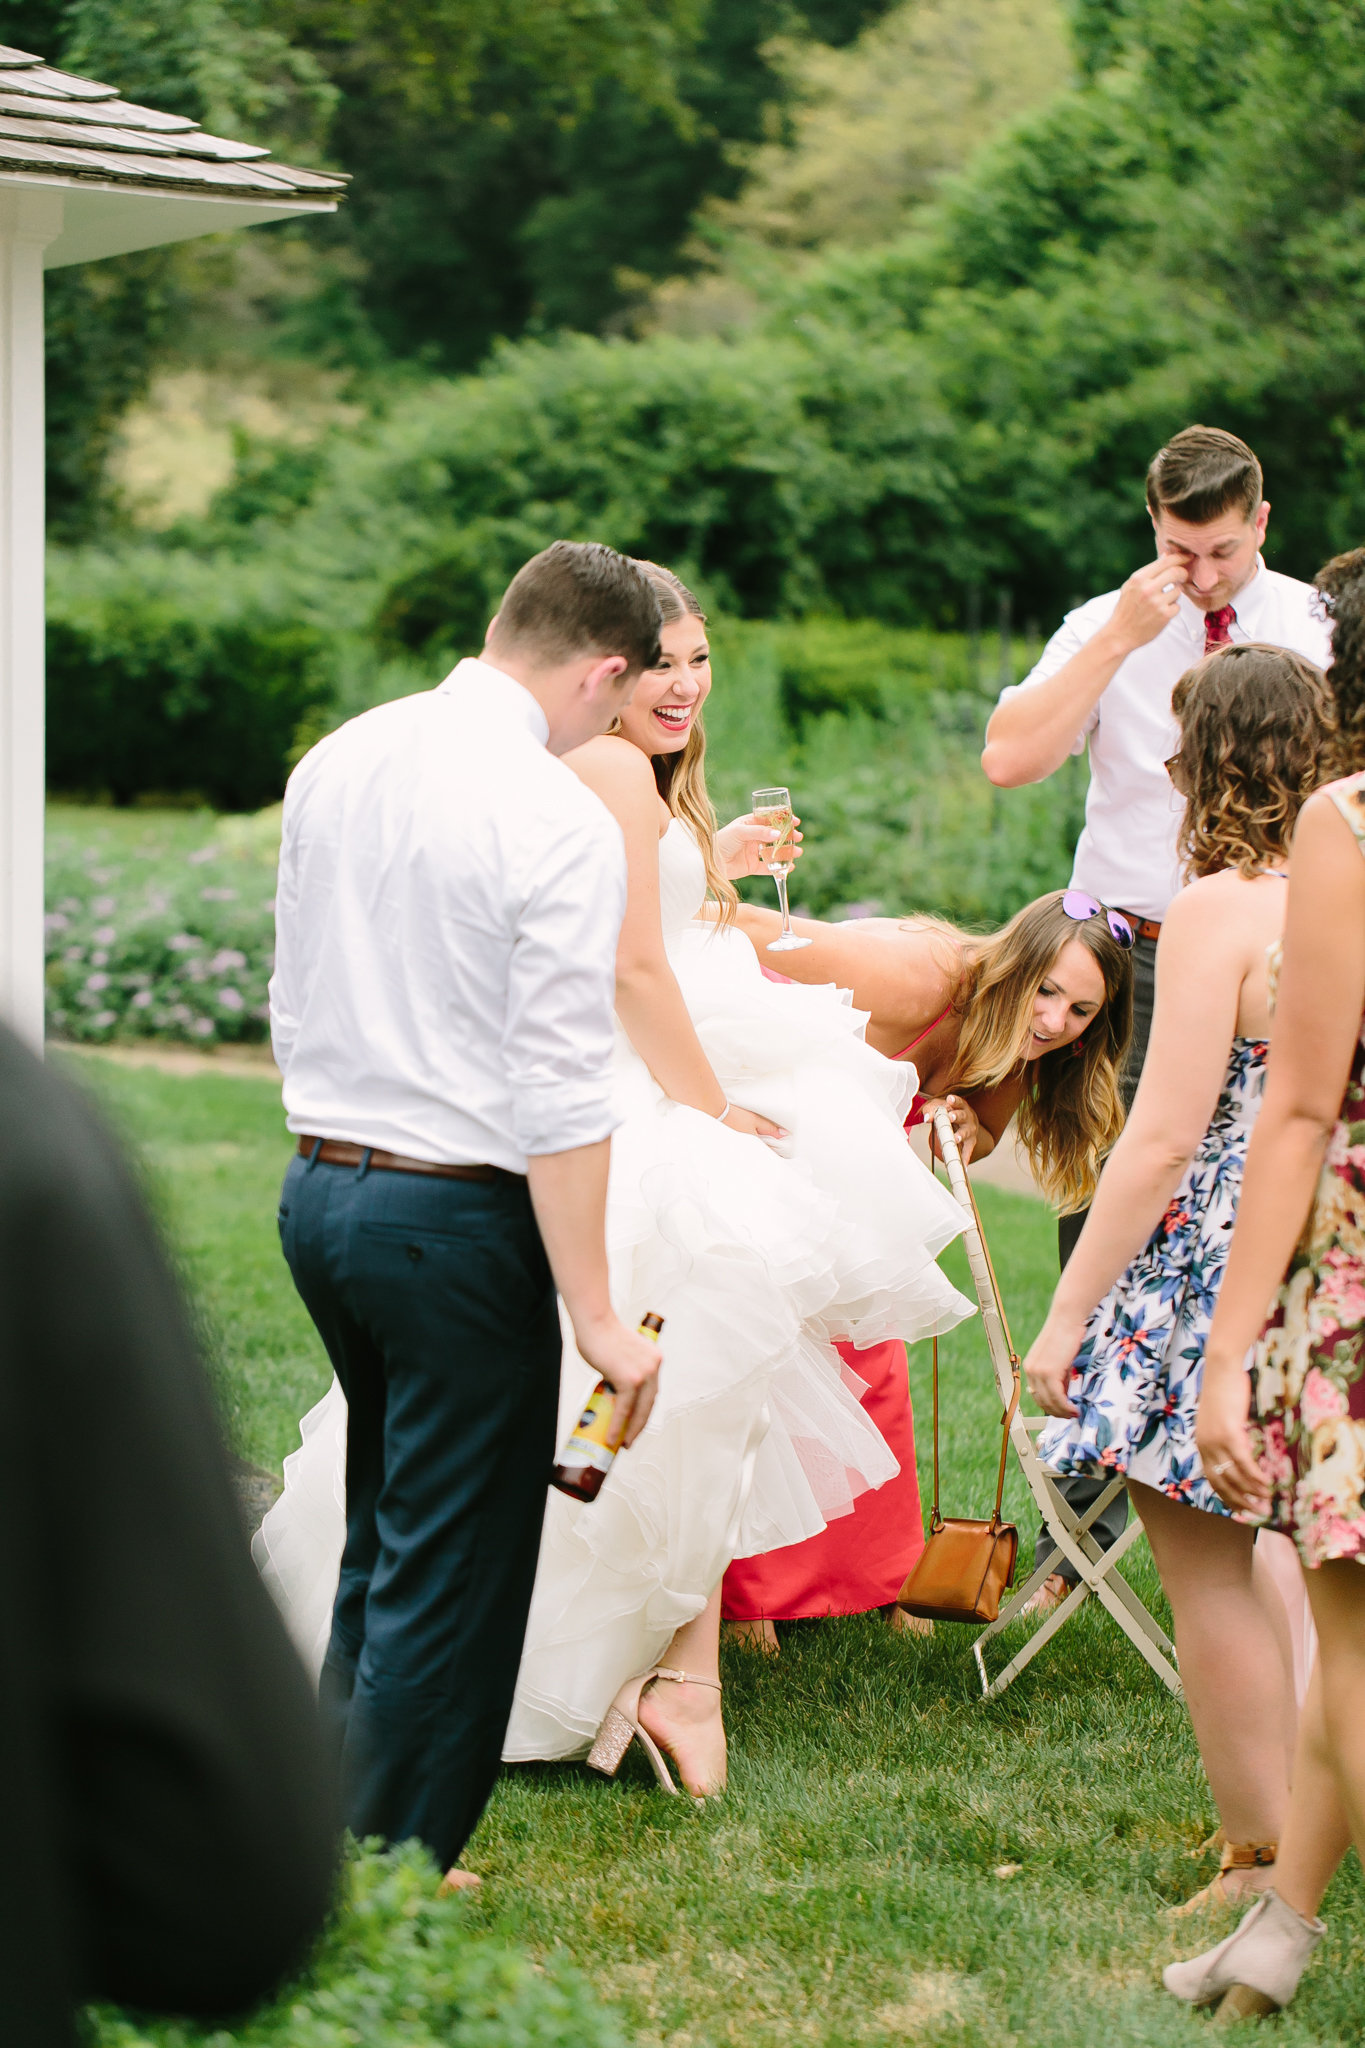 Bhullphotography_hillsteadmuseumwedding-93